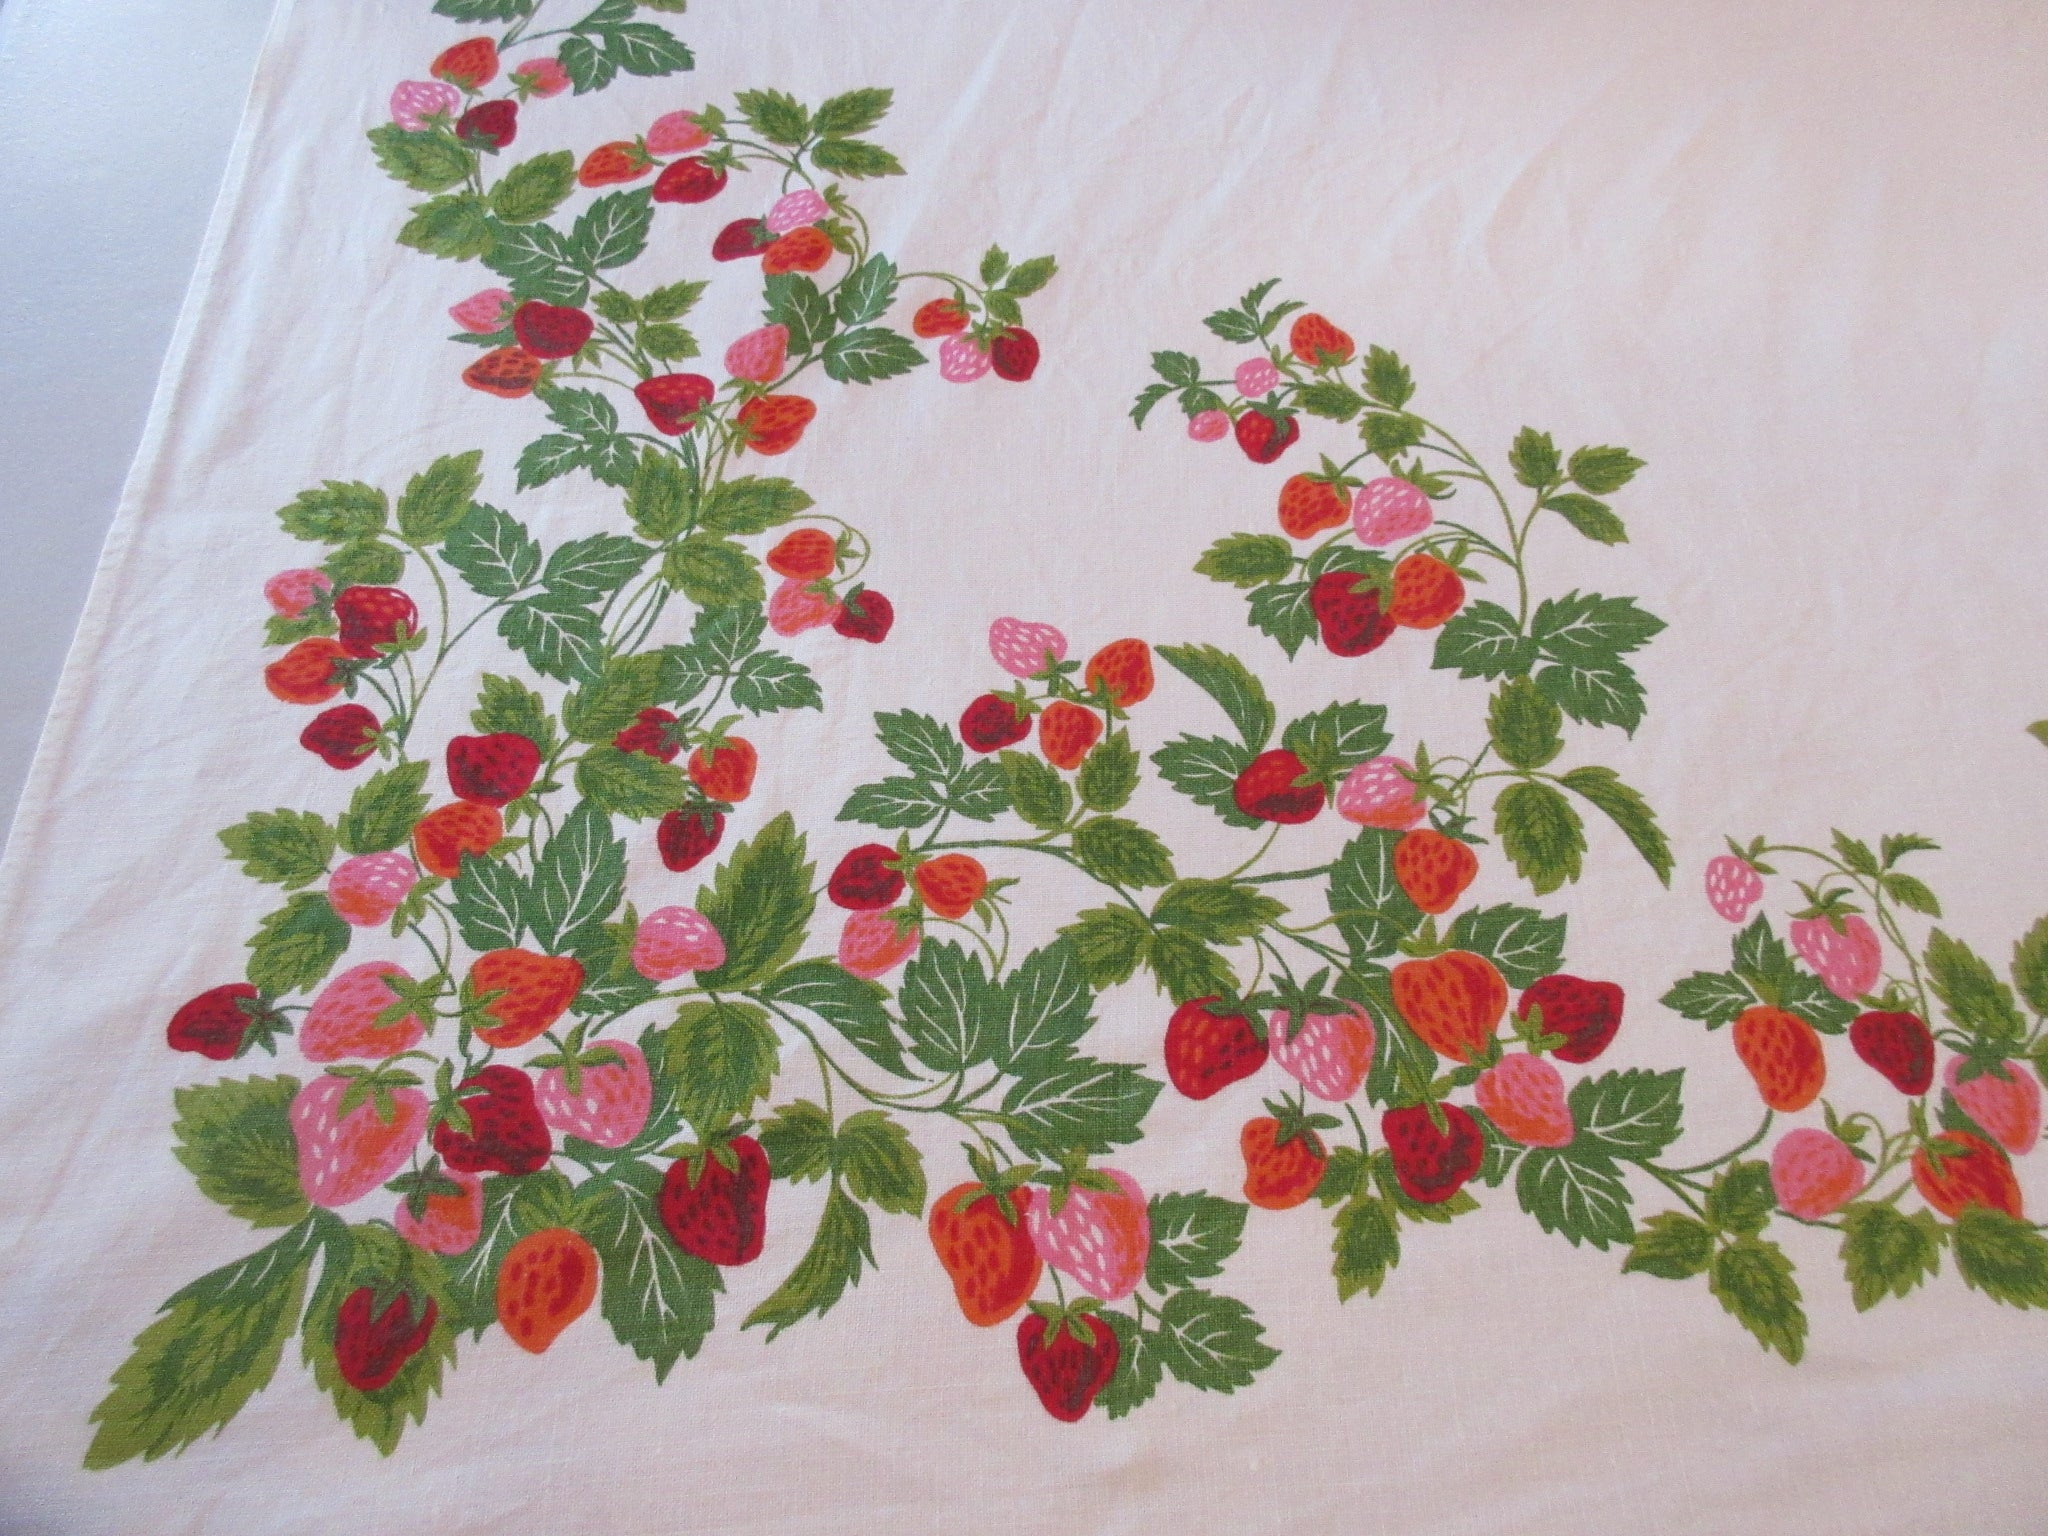 Stunning Sweet Strawberries Linen Fruit Vintage Printed Tablecloth (66 X 50)